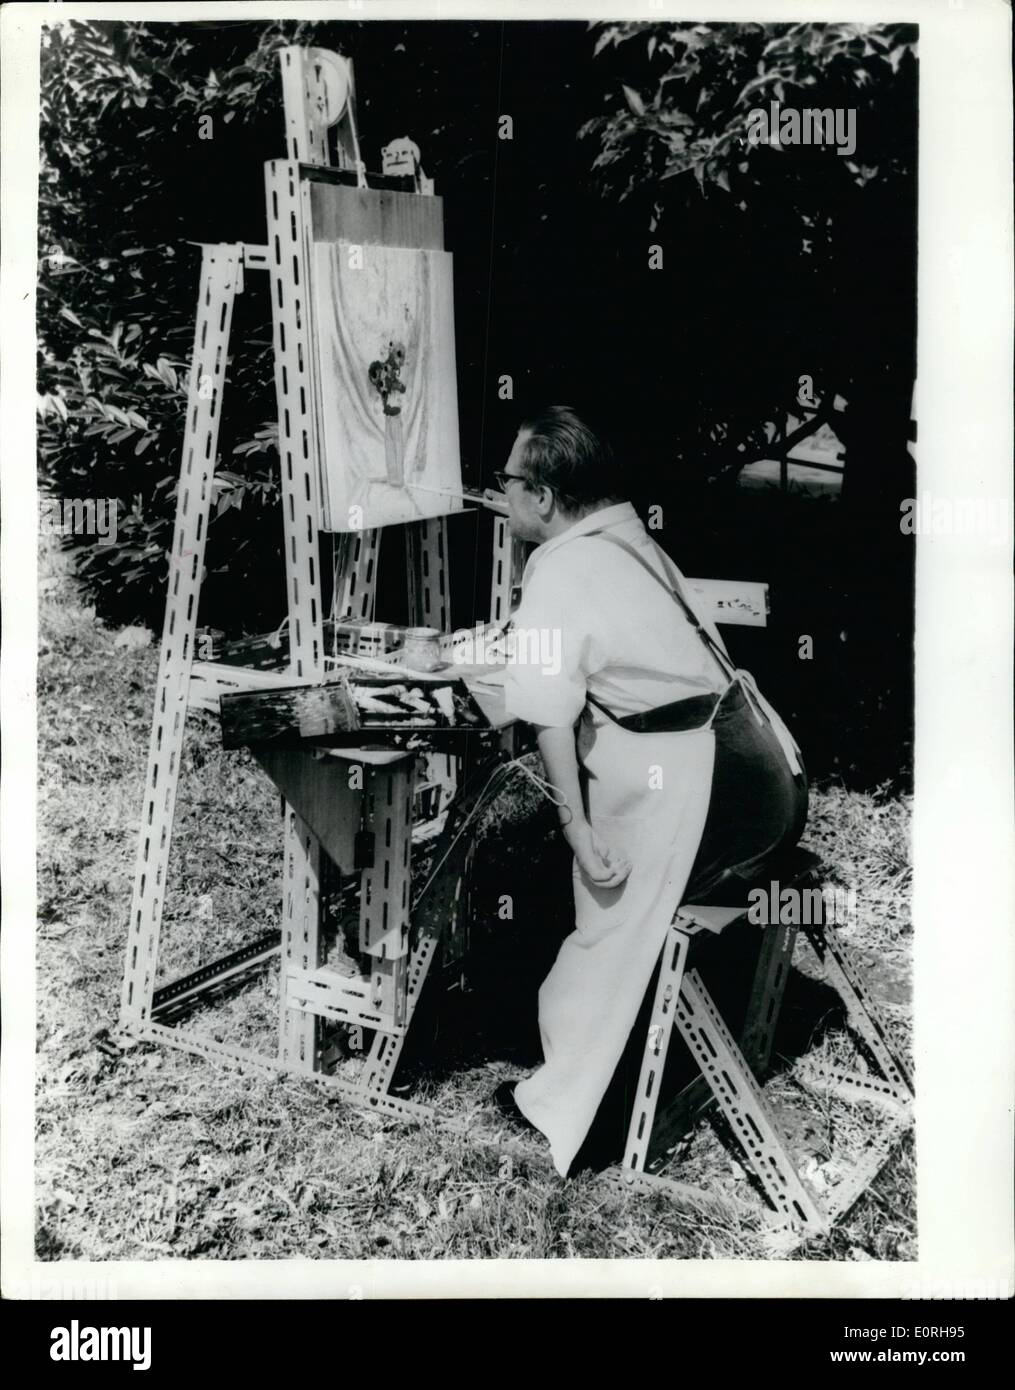 Sep. 09, 1959 - Unique Easel helps crippled artists.: Albert Baker a patient at Le Court, Liss, Hampshire, a Cheshire Foundation Home has struggled for some years to become a successful artist. Unable to use his hands he has trained himself to hold a paint brush with his teeth - but until recently his problems were to great - for he could neither stand or sit more than a few minutes at a time without suffering intense pain - and he could not reach all parts of the canvas without having someone to move it - Stock Image